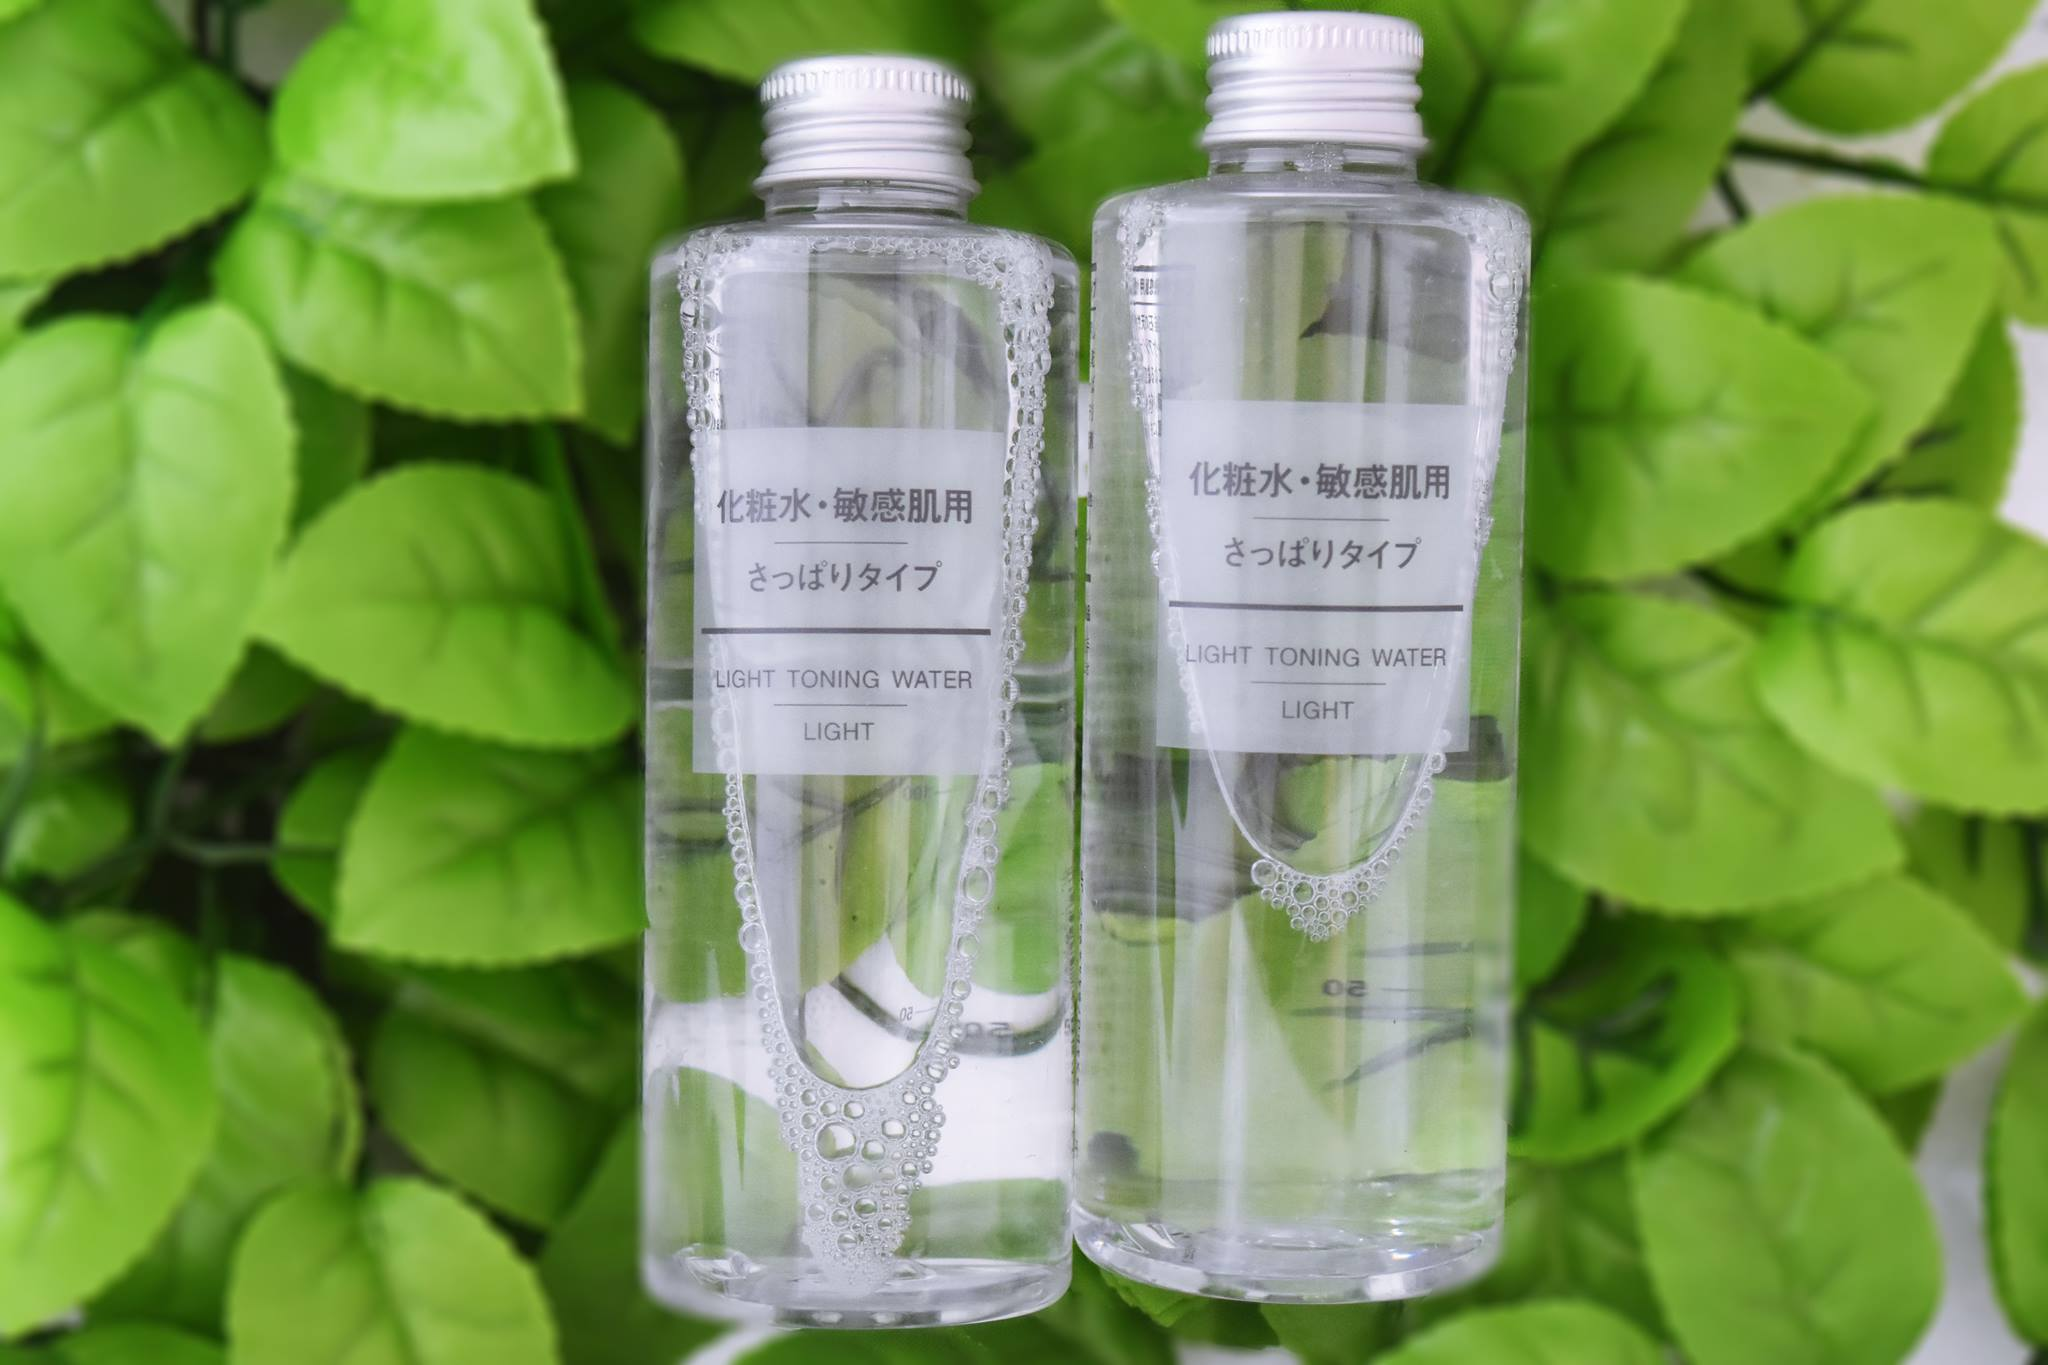 Nuoc-hoa-hong-Muji-Light-Toning-Water-Light-400ml-cua-Nhat-Ban-8